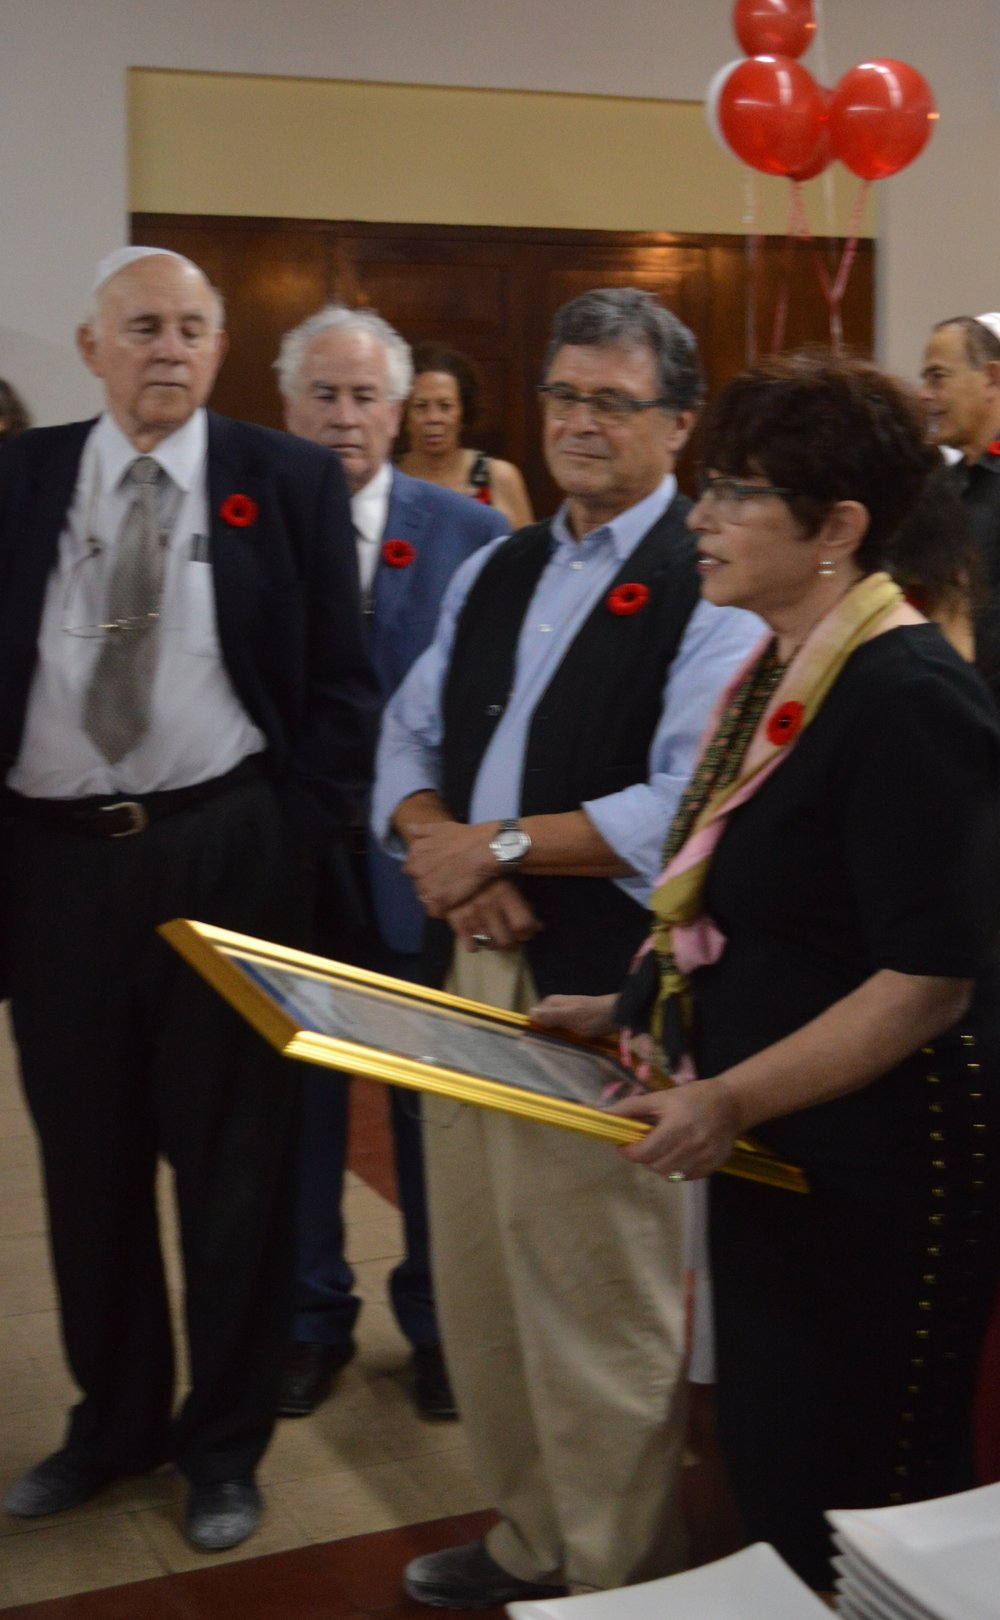 Joan presents a plaque from the Sousa Mendes Foundation (SMF) to the Israelite Community of Jamaica in recognition of the role members of the community played in making life better for the Jewish residents of Gibraltar Evacuee Camp from 1942 - 1946, when the last evacuees left Jamaica.  L to R: Ainsley Henriques, Itzhak Halperin, Joan and Robert Jacobvitz, Chair of the SMF Advisory Council.